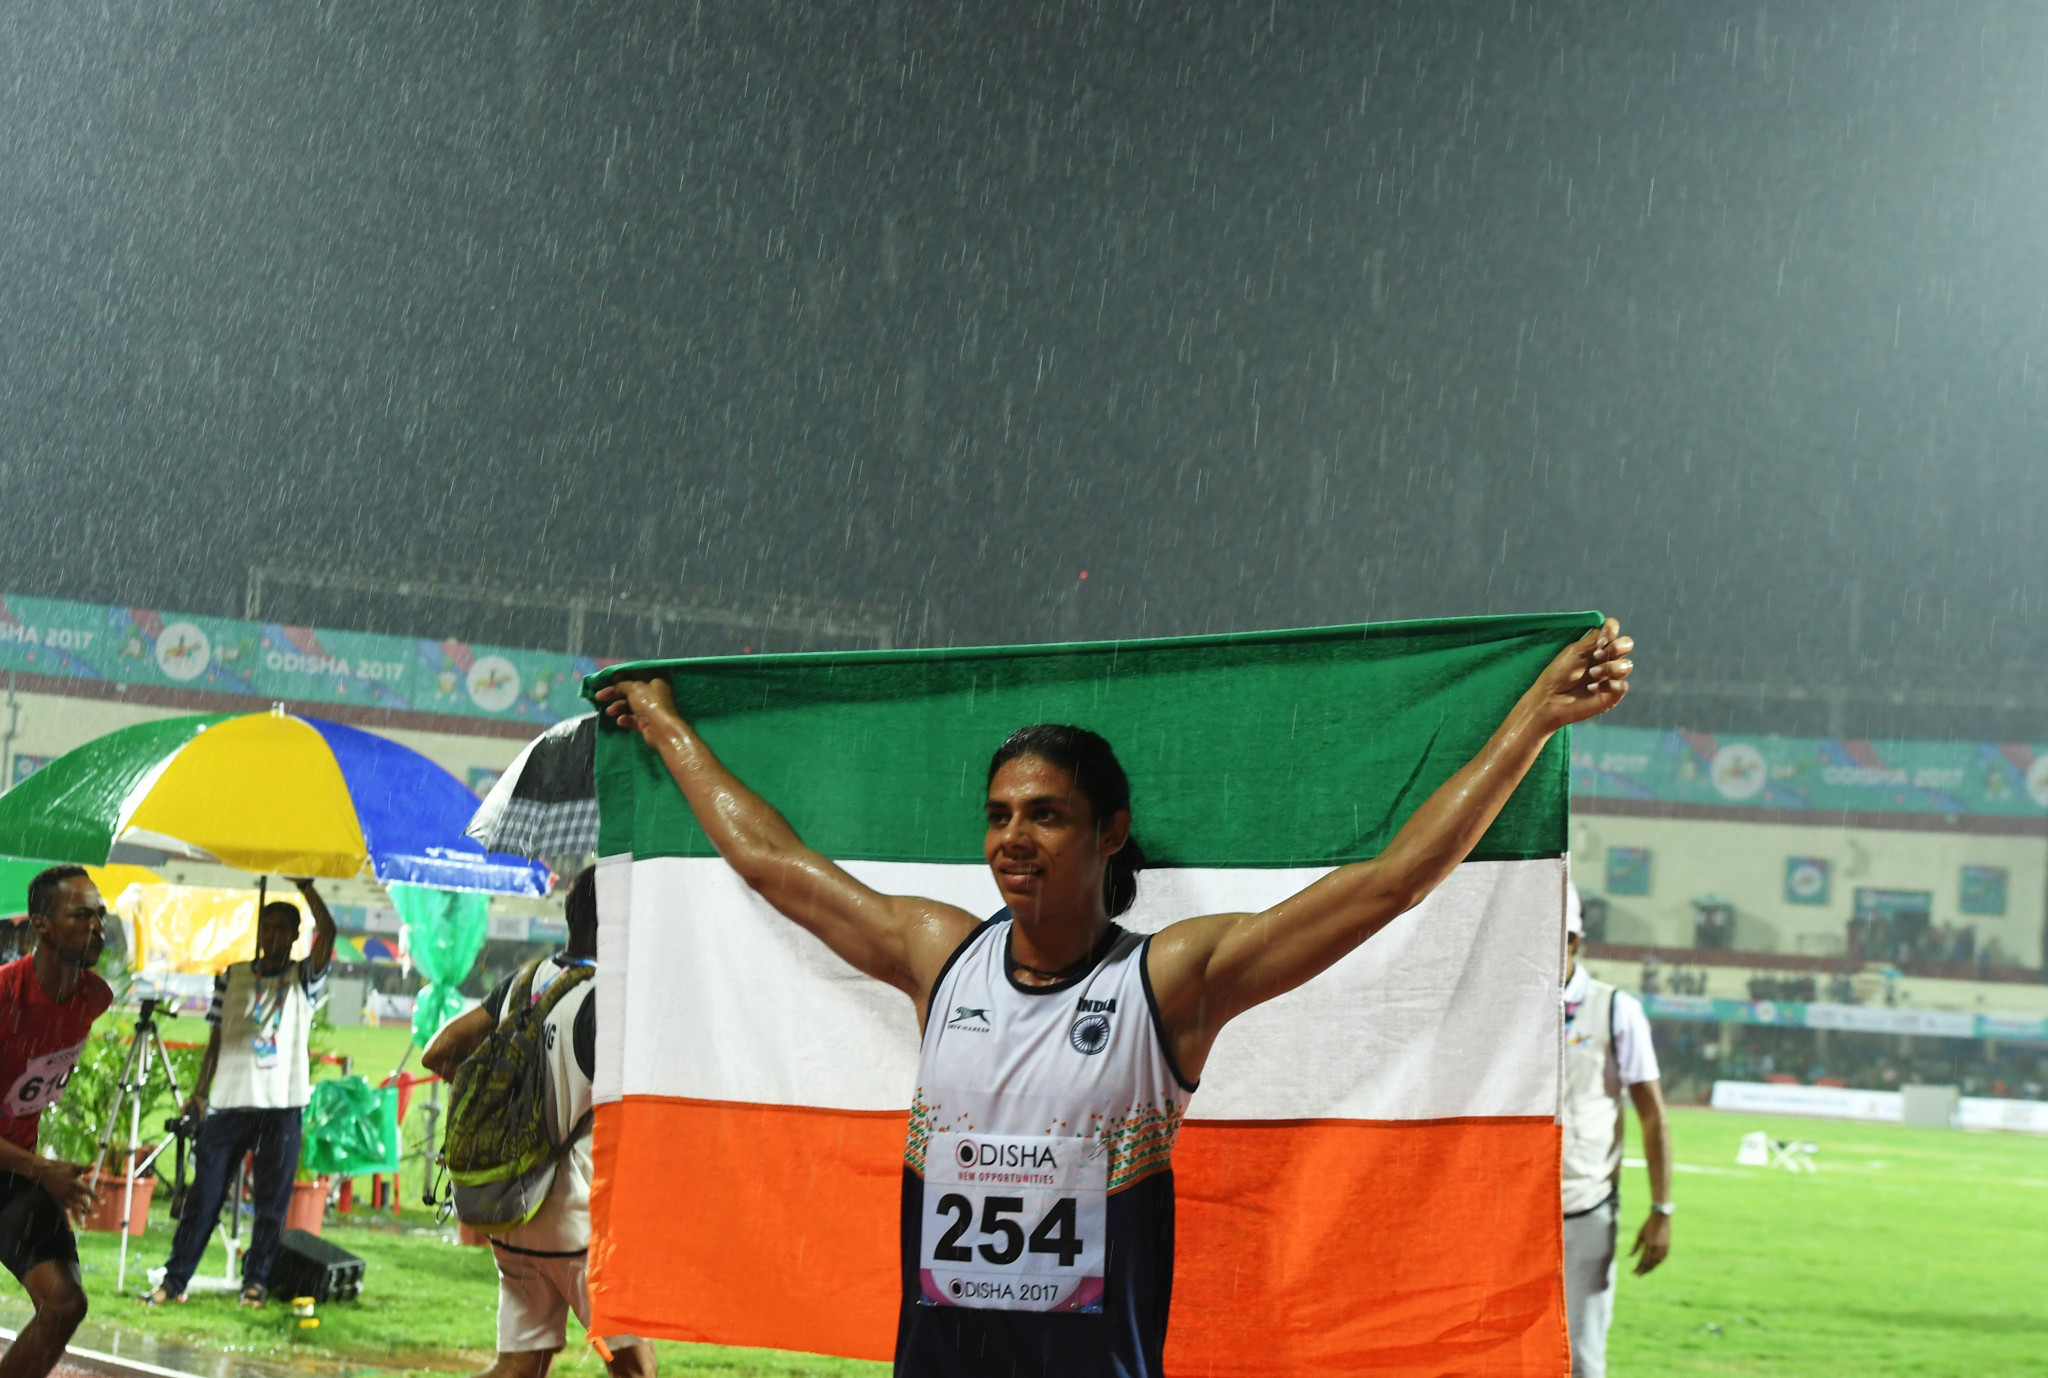 Indian to be stripped of two Asian Championships golds after doping ban